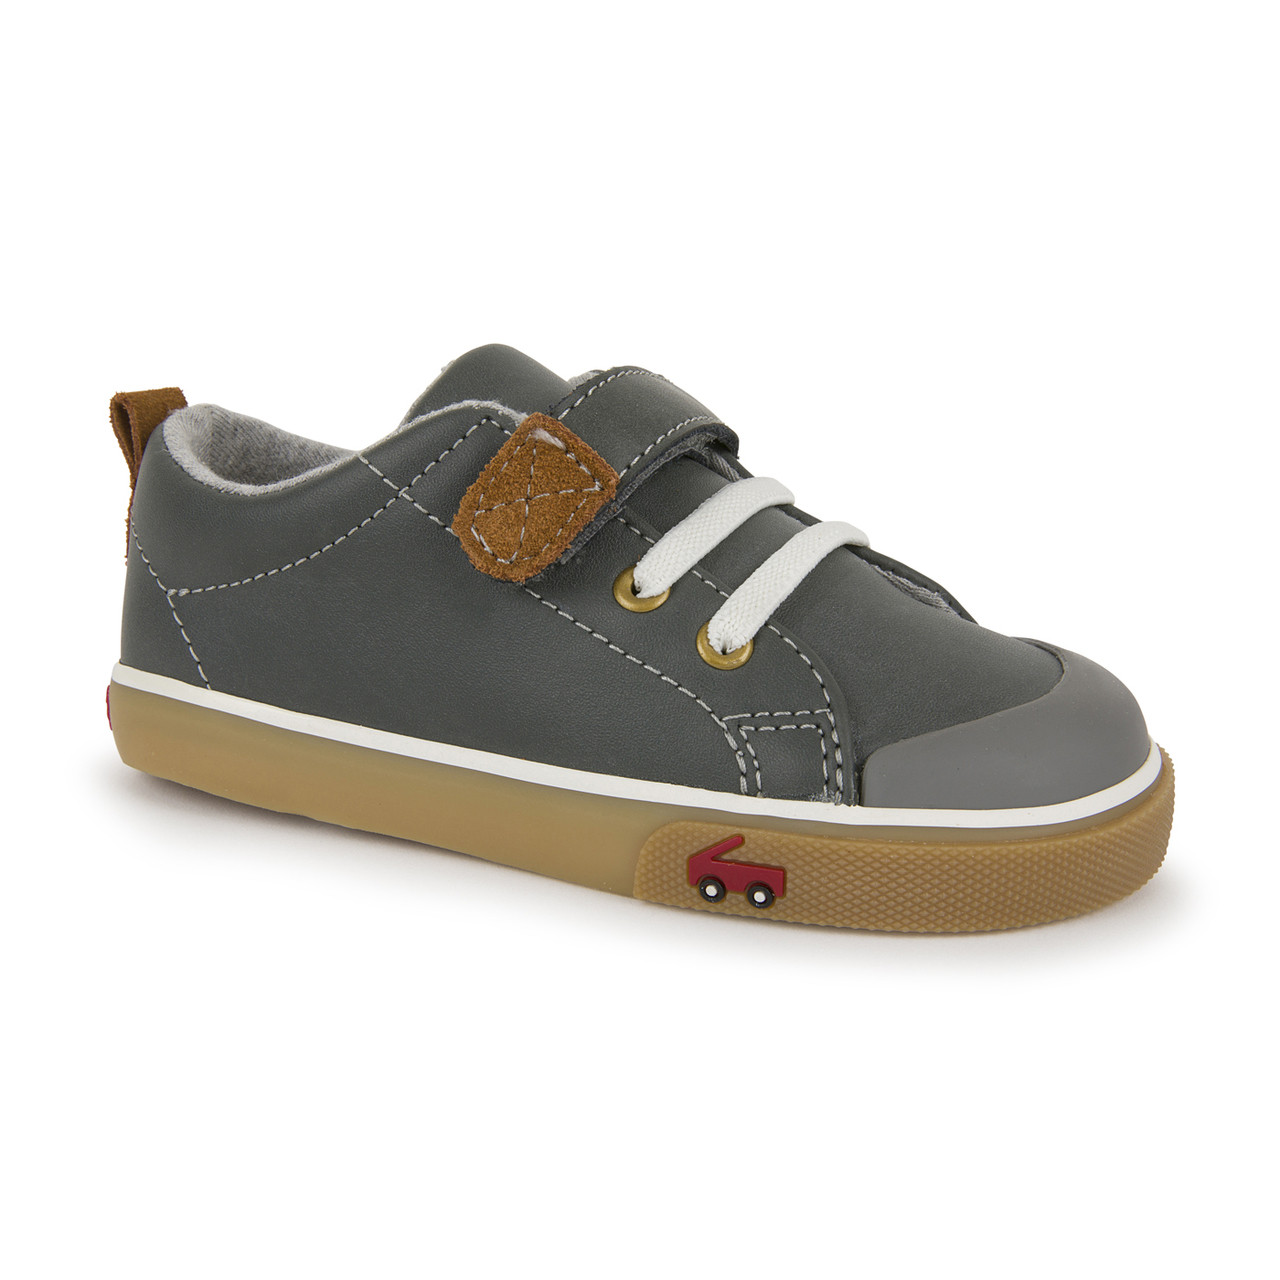 Details about  /New SEE KAI RUN Stevie II Boys Brown Leather Sneakers Toddler 7T US 23 EUR